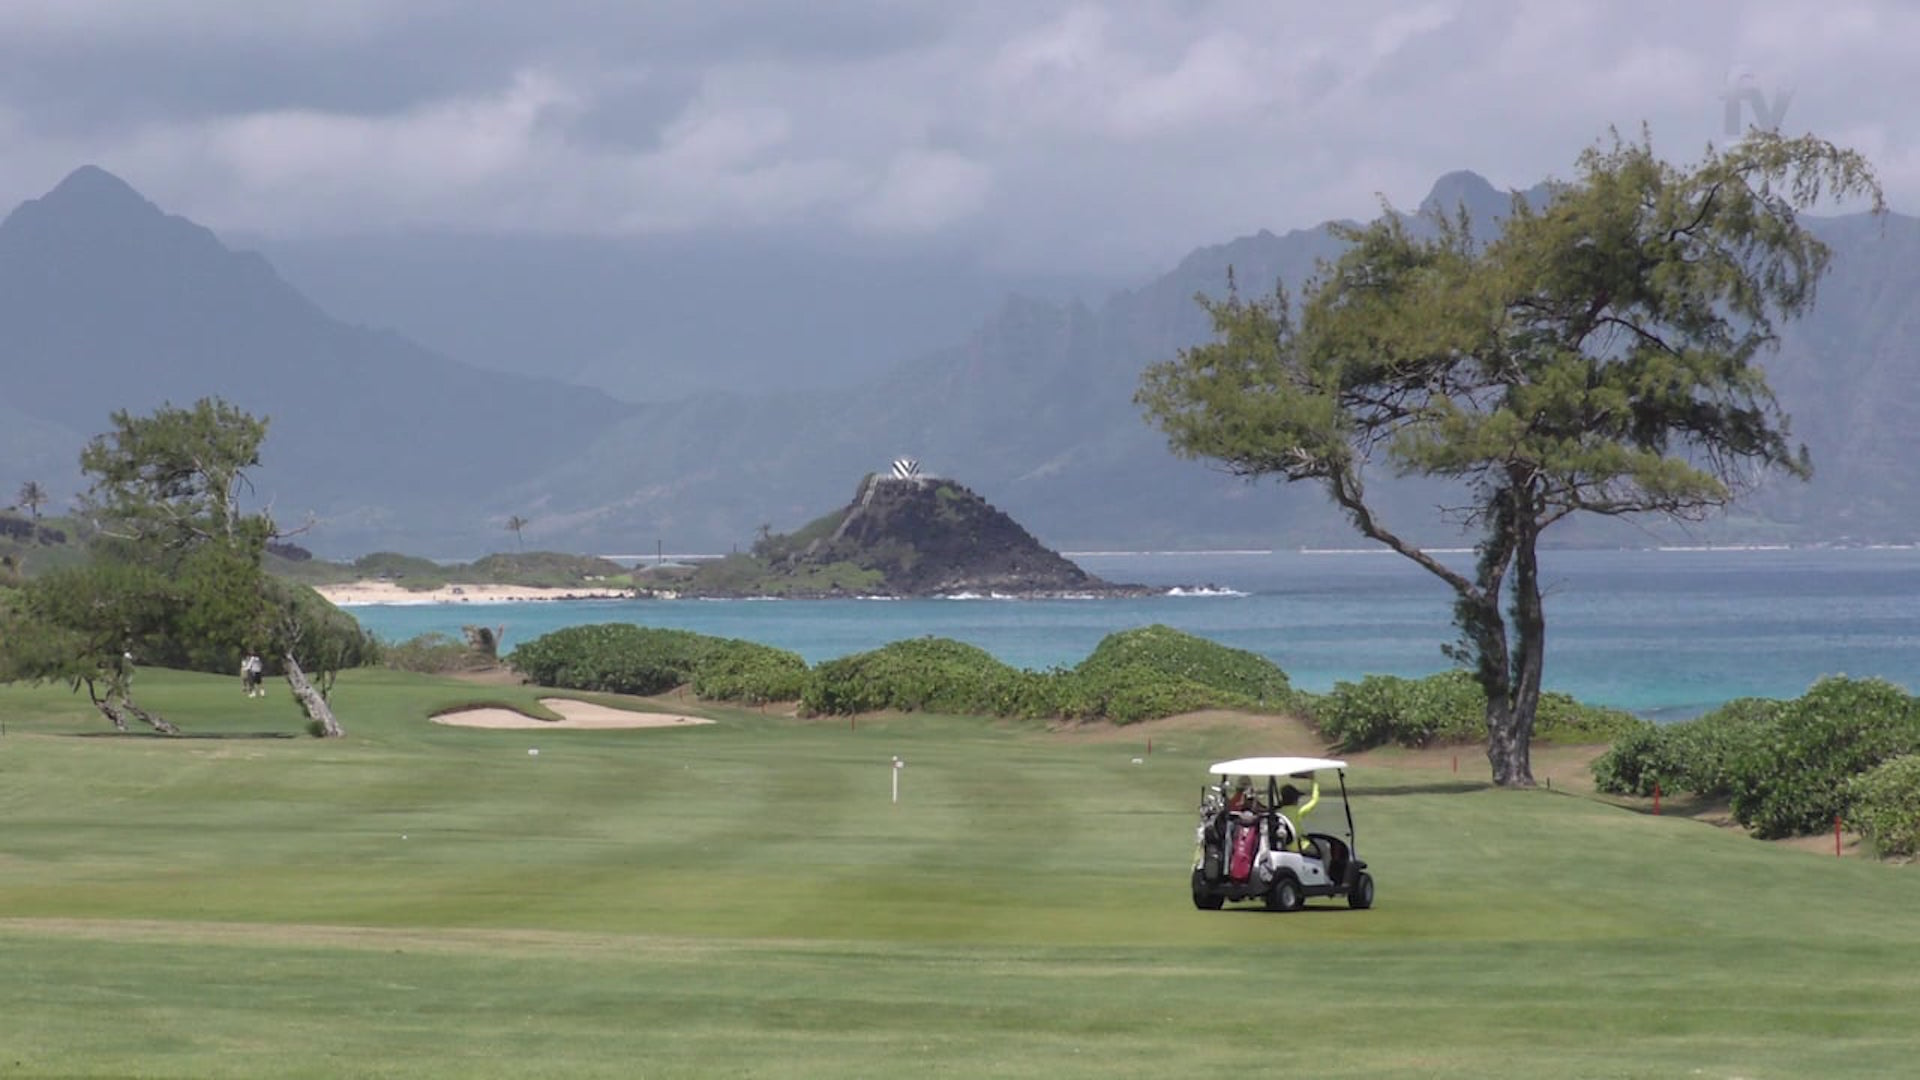 Obama lording it up on Hawaii golf course